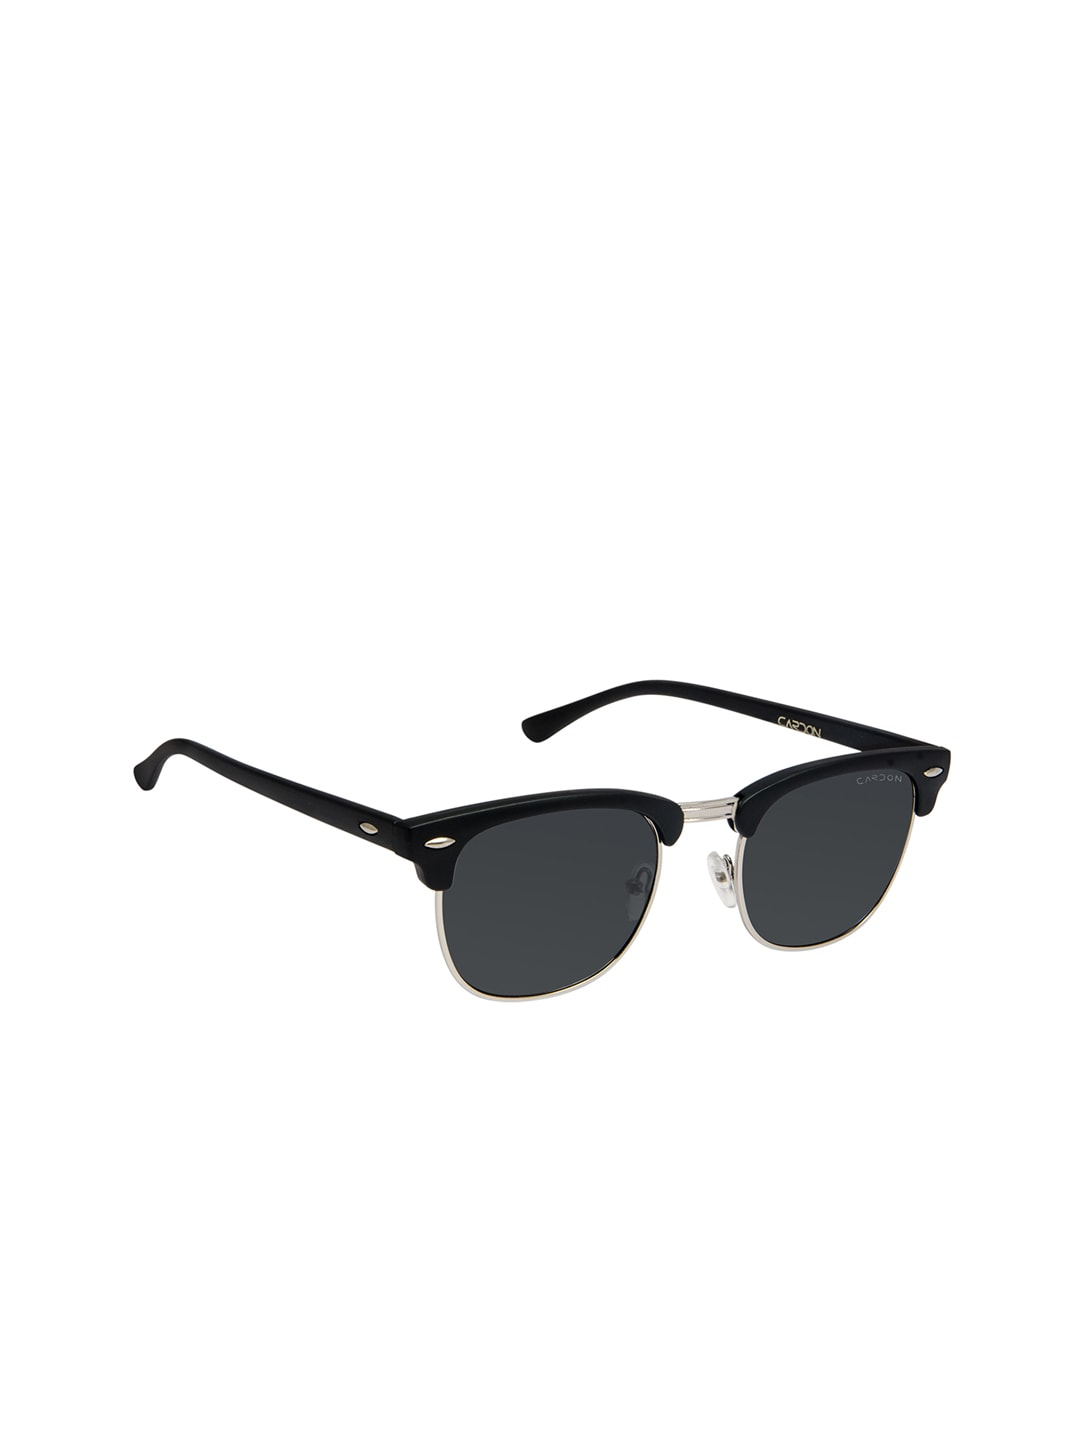 1340fdaedc Sunglasses For Men - Buy Mens Sunglasses Online in India